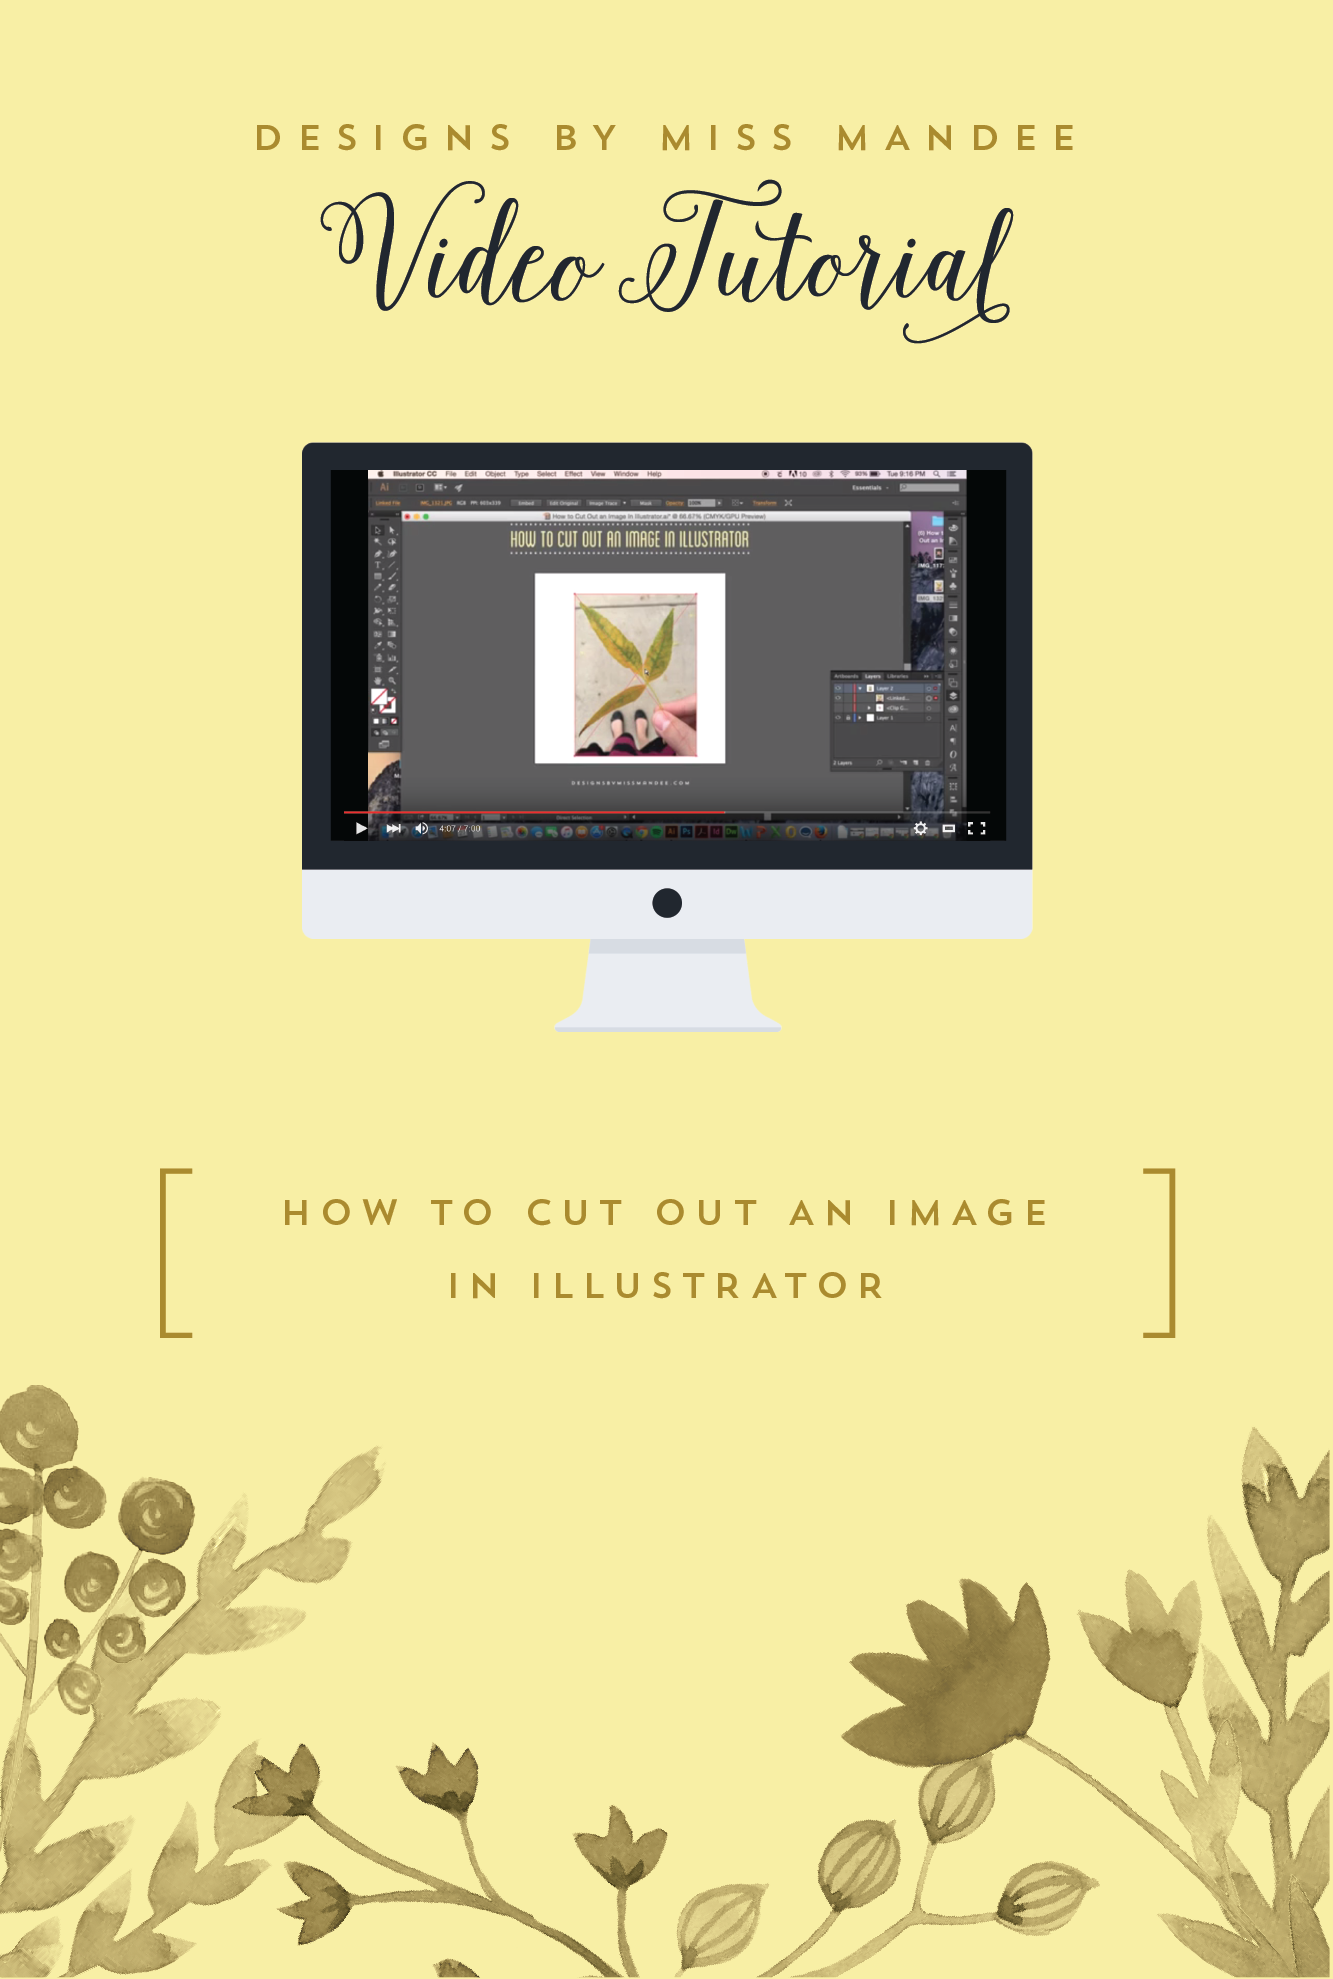 How to Cut Out an Image in Illustrator